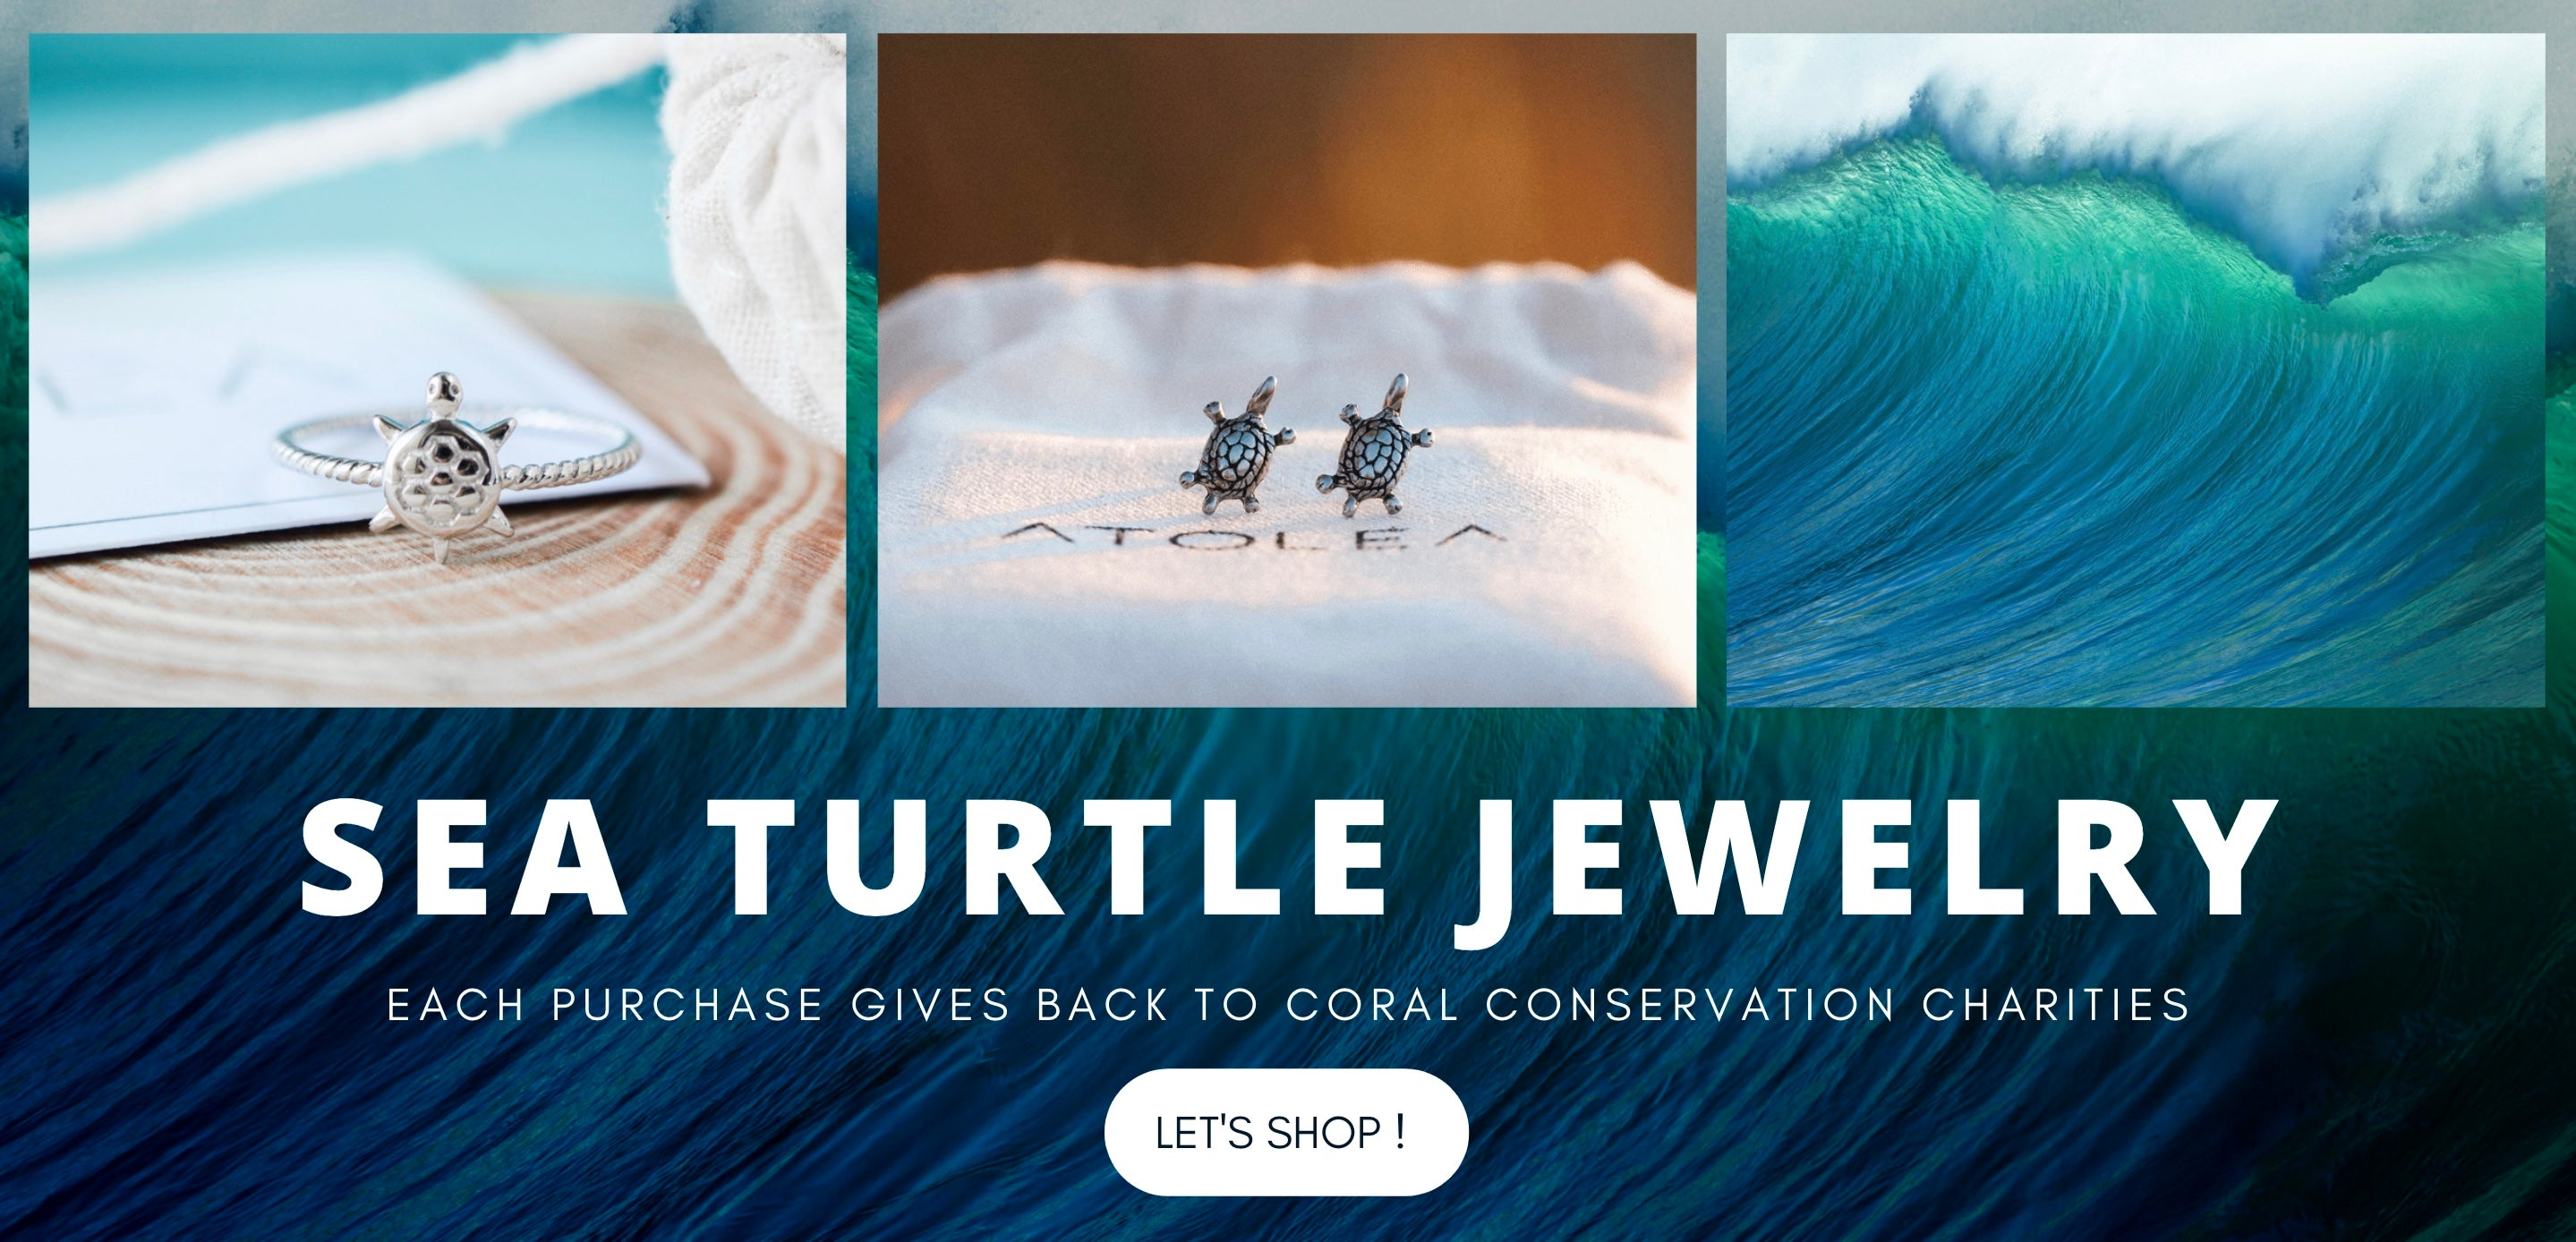 Save the sea turtles jewelry